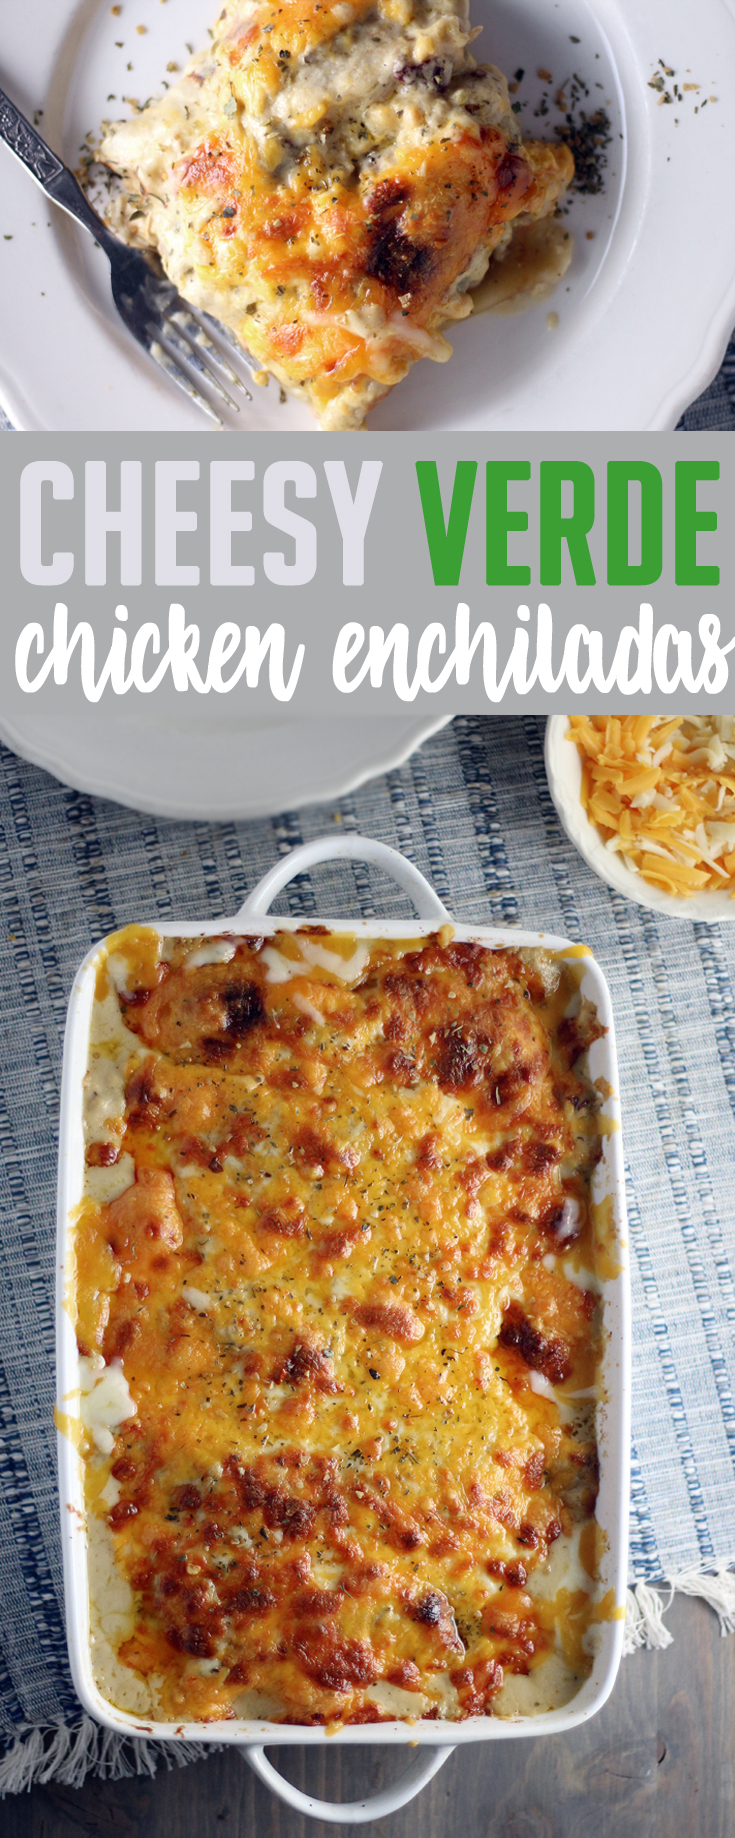 Crave-worthy Cheesy Verde Chicken Enchiladas are your new favorite Mexican Meal. Homemade cheese sauce (no canned cream of anything here) with tangy salsa verde + smoky chipotles.  #chickenenchiladas #yummyfood #easyrecipes #chickenrecipe